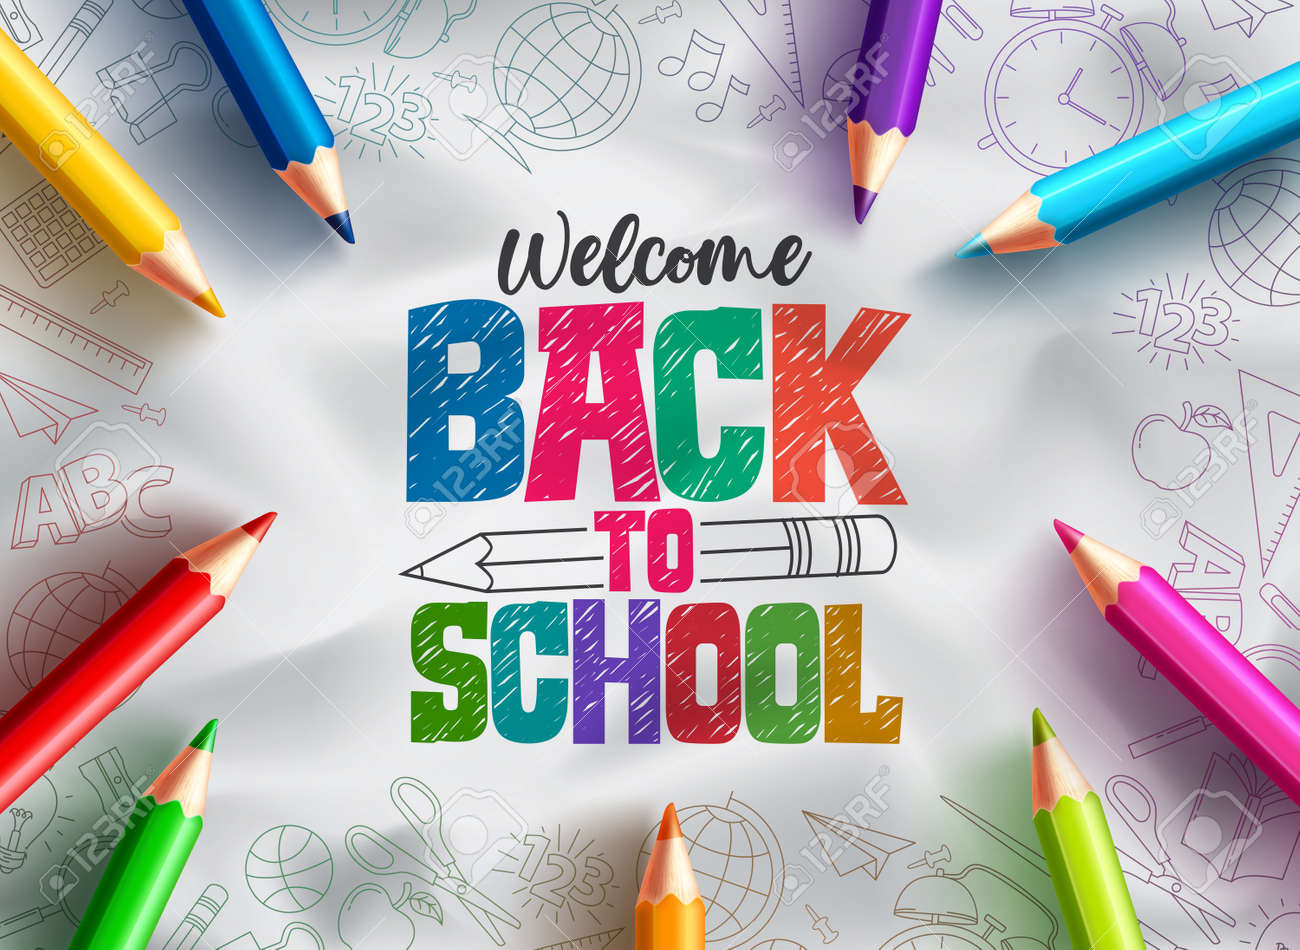 Back to school vector background design. Welcome back to school text with colorful pencils educational supplies element in hand drawn background. Vector illustration - 168629308